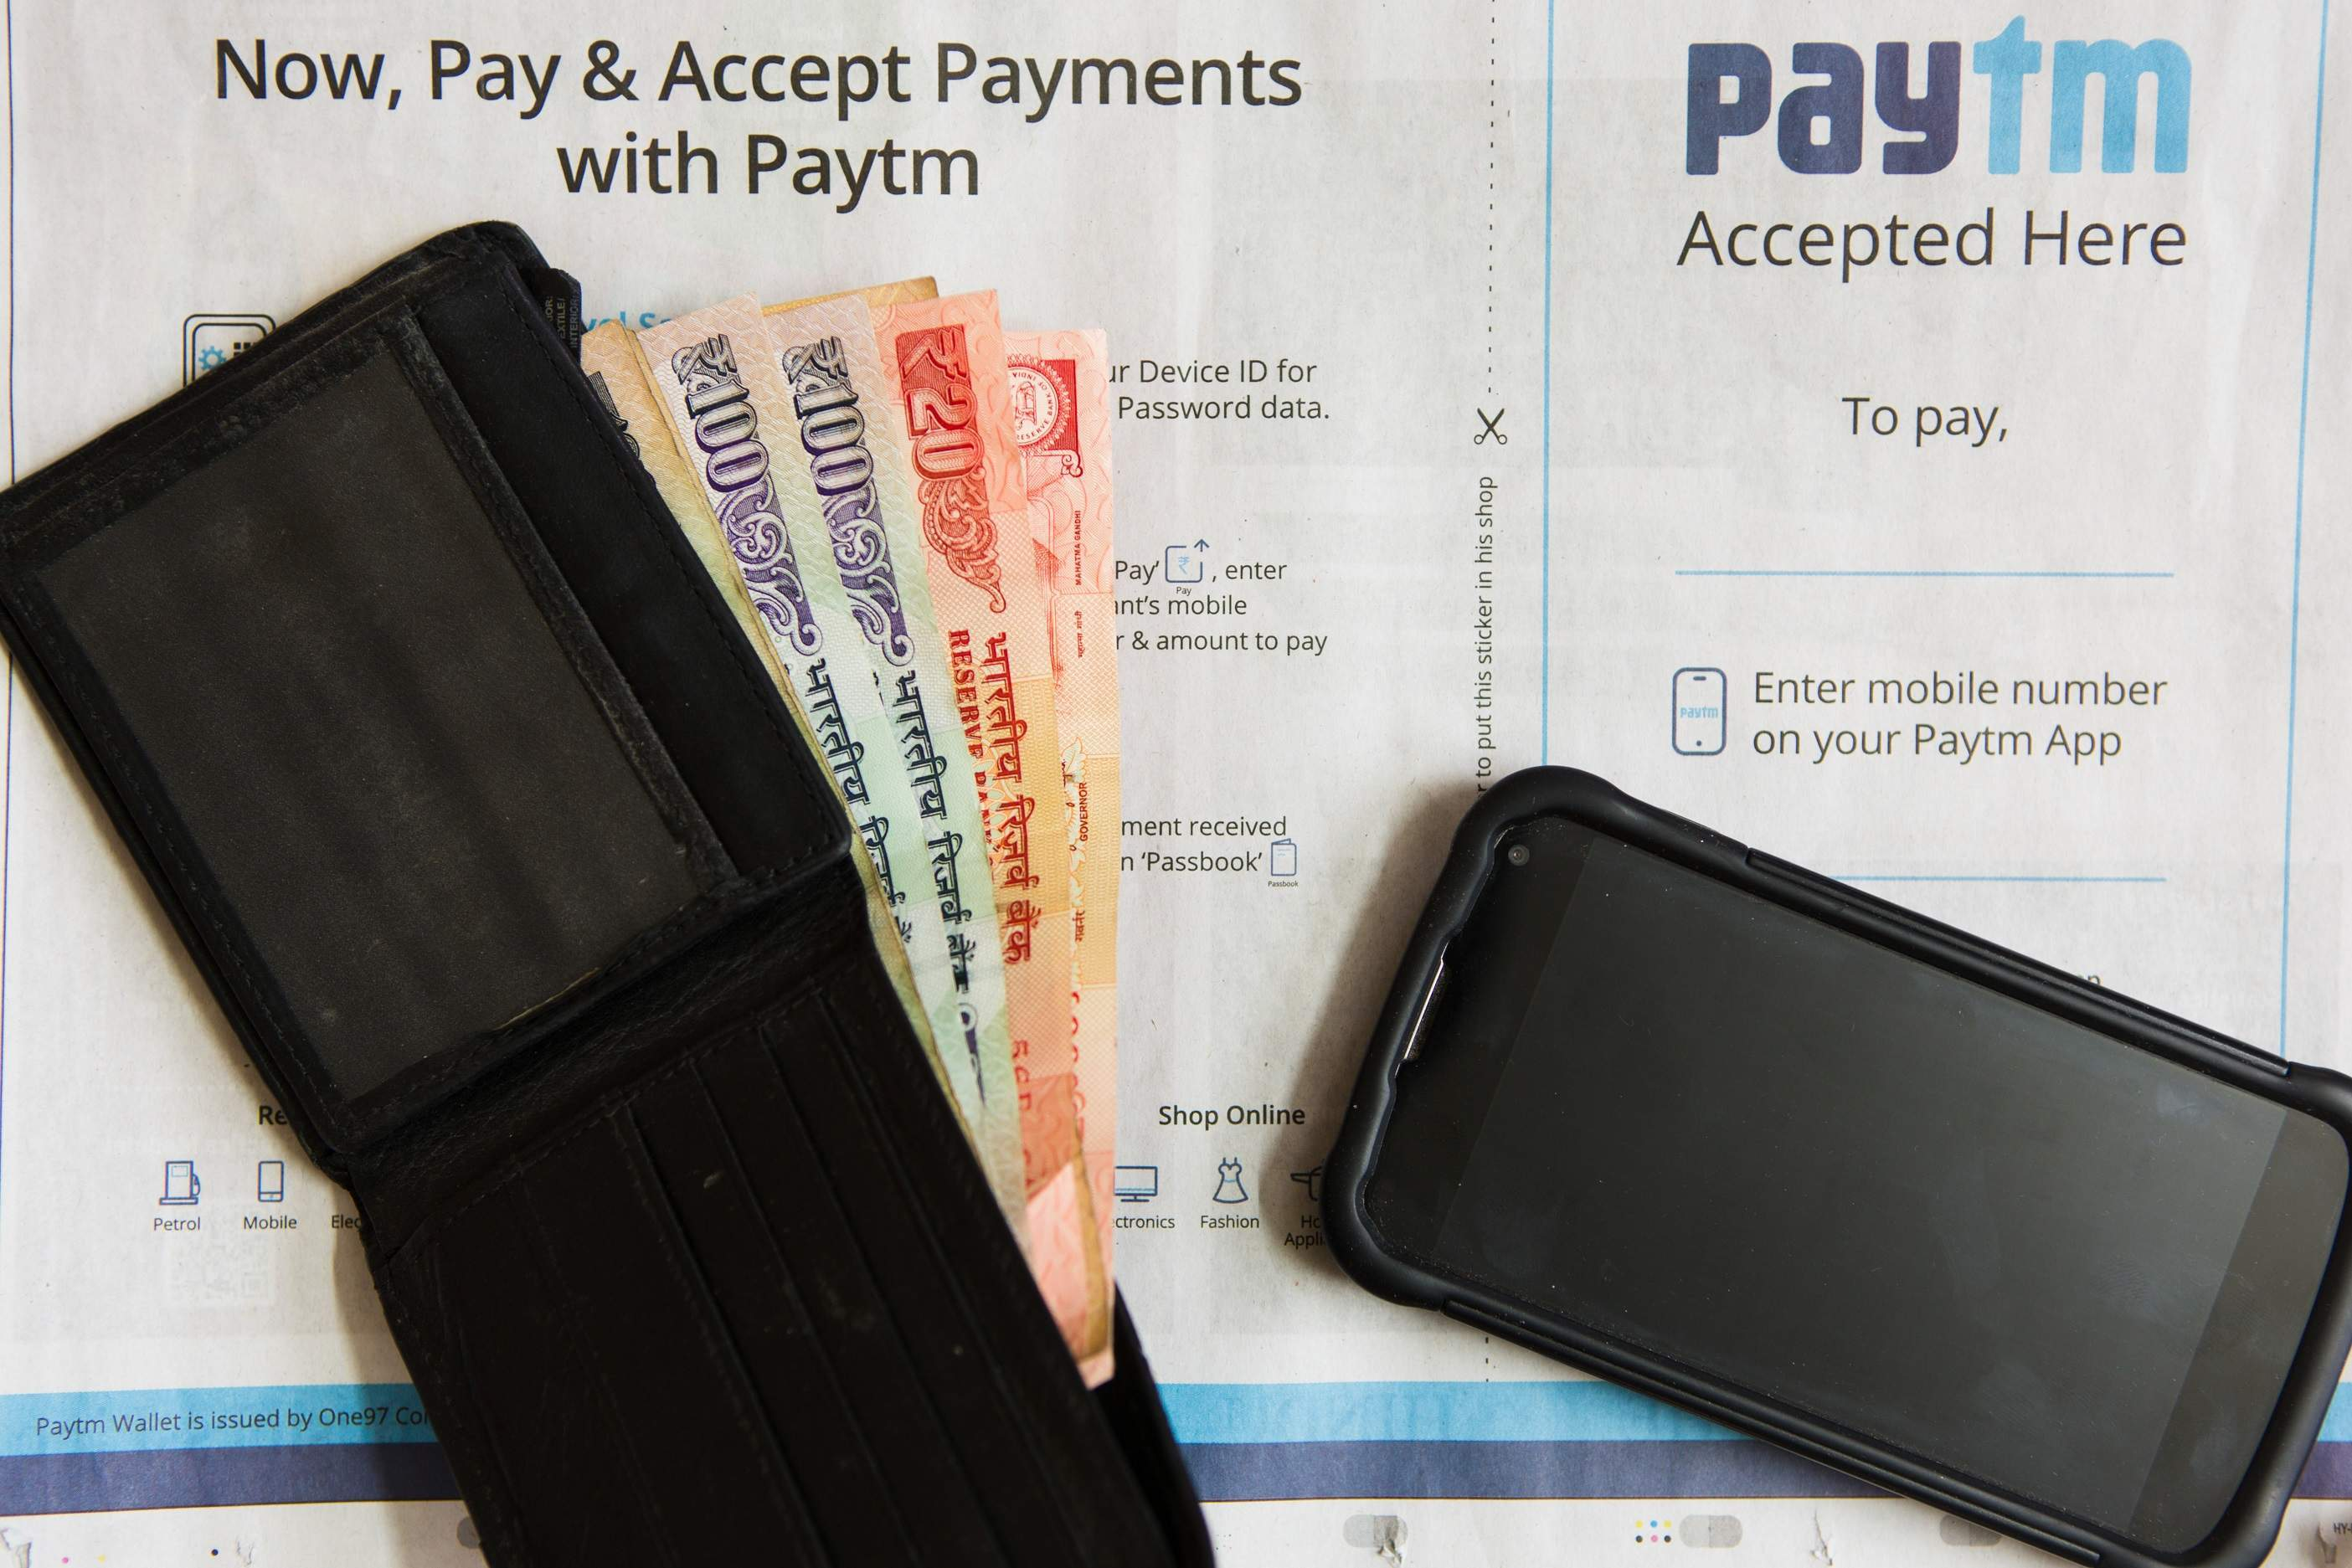 India's Paytm is looking to launch a messaging app to rival WhatsApp